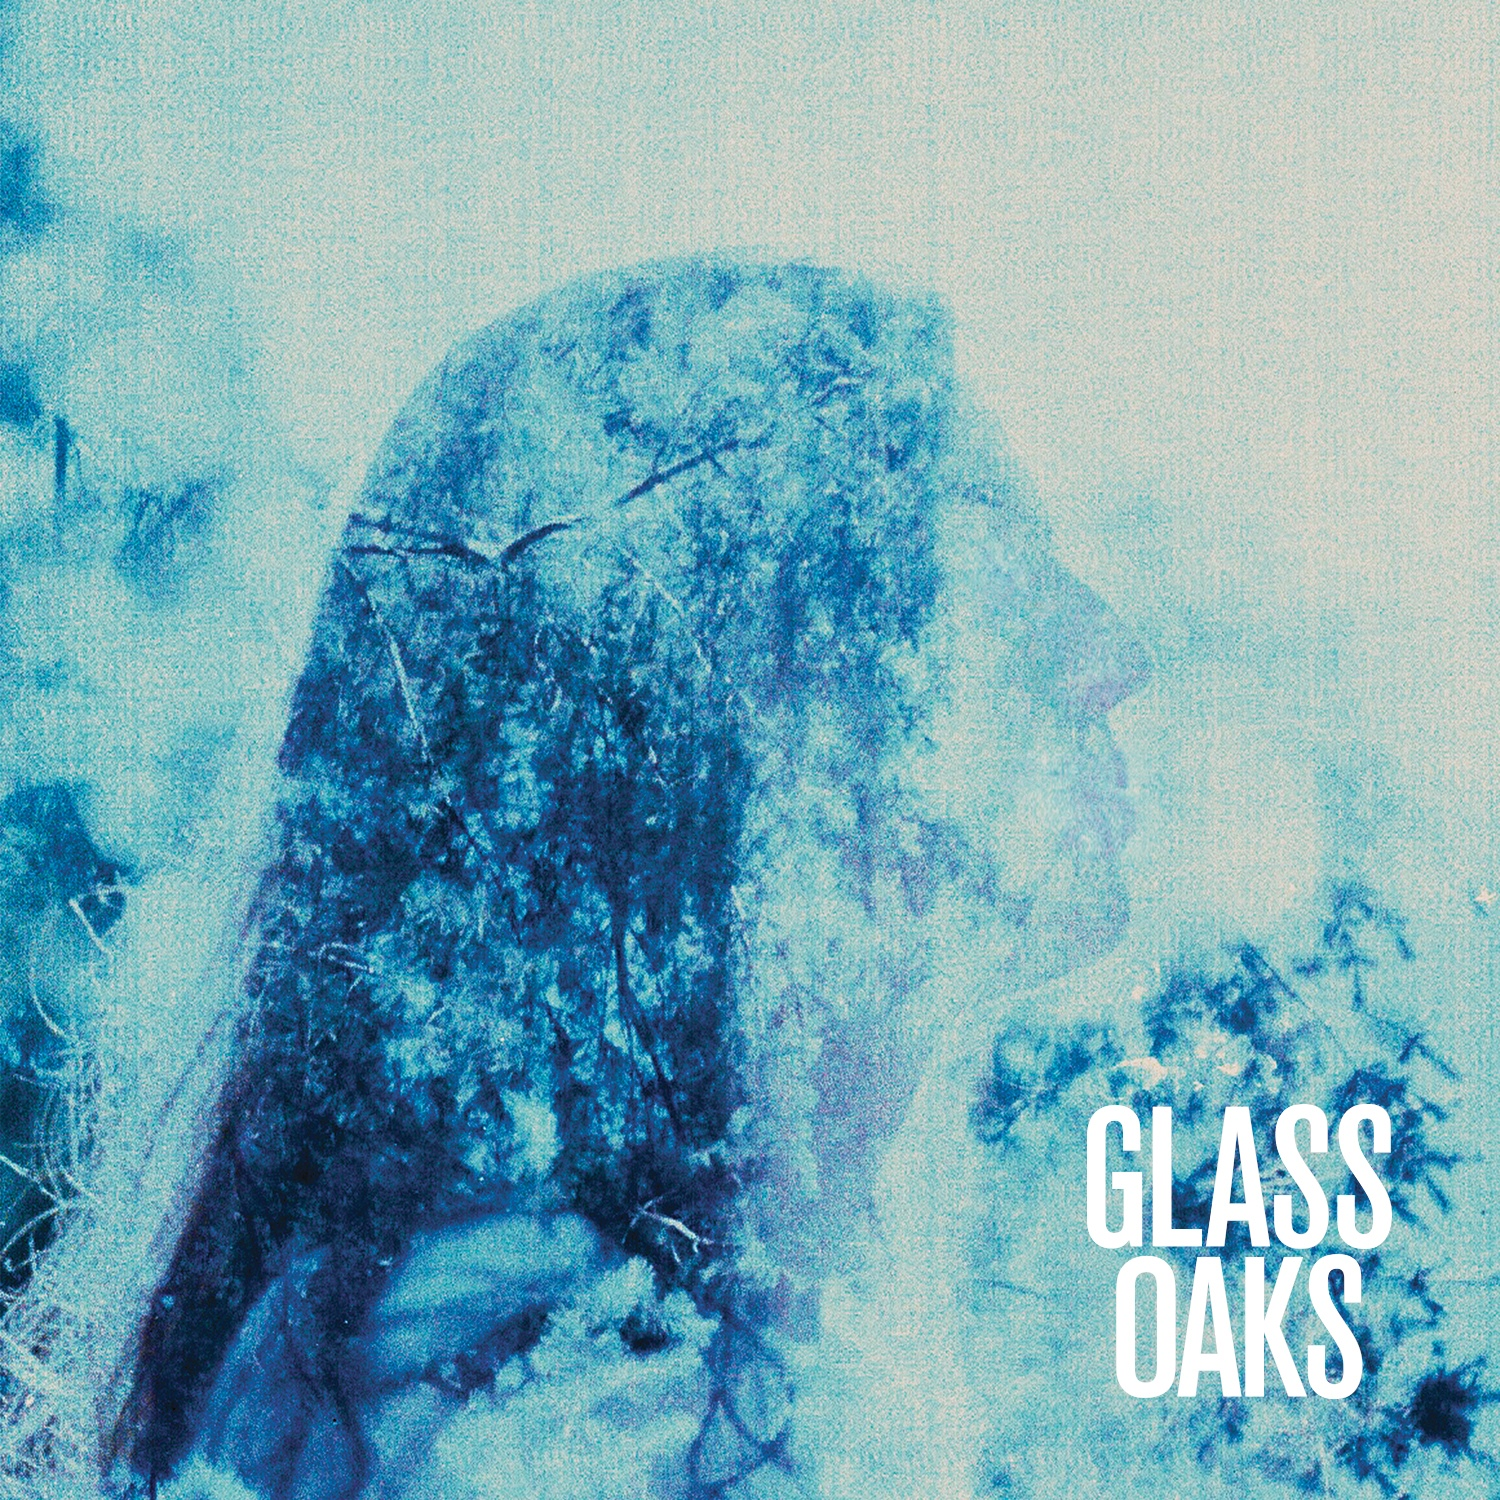 original-glassoaks_albumart.jpg